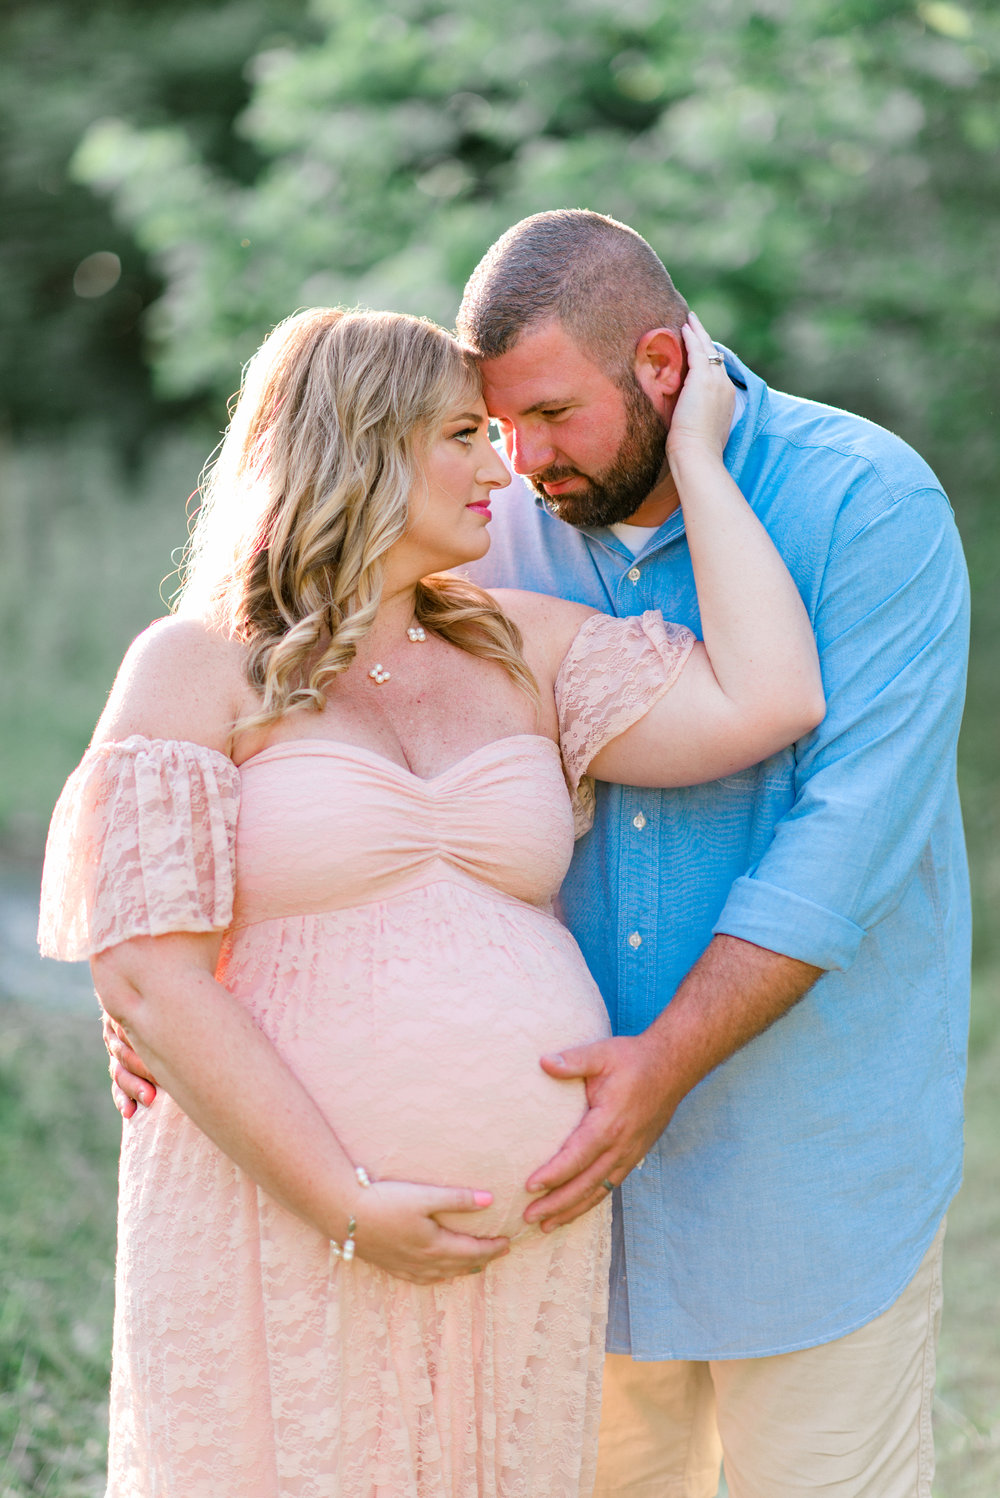 kentucky-lifestyle-photographer-maternity-summer